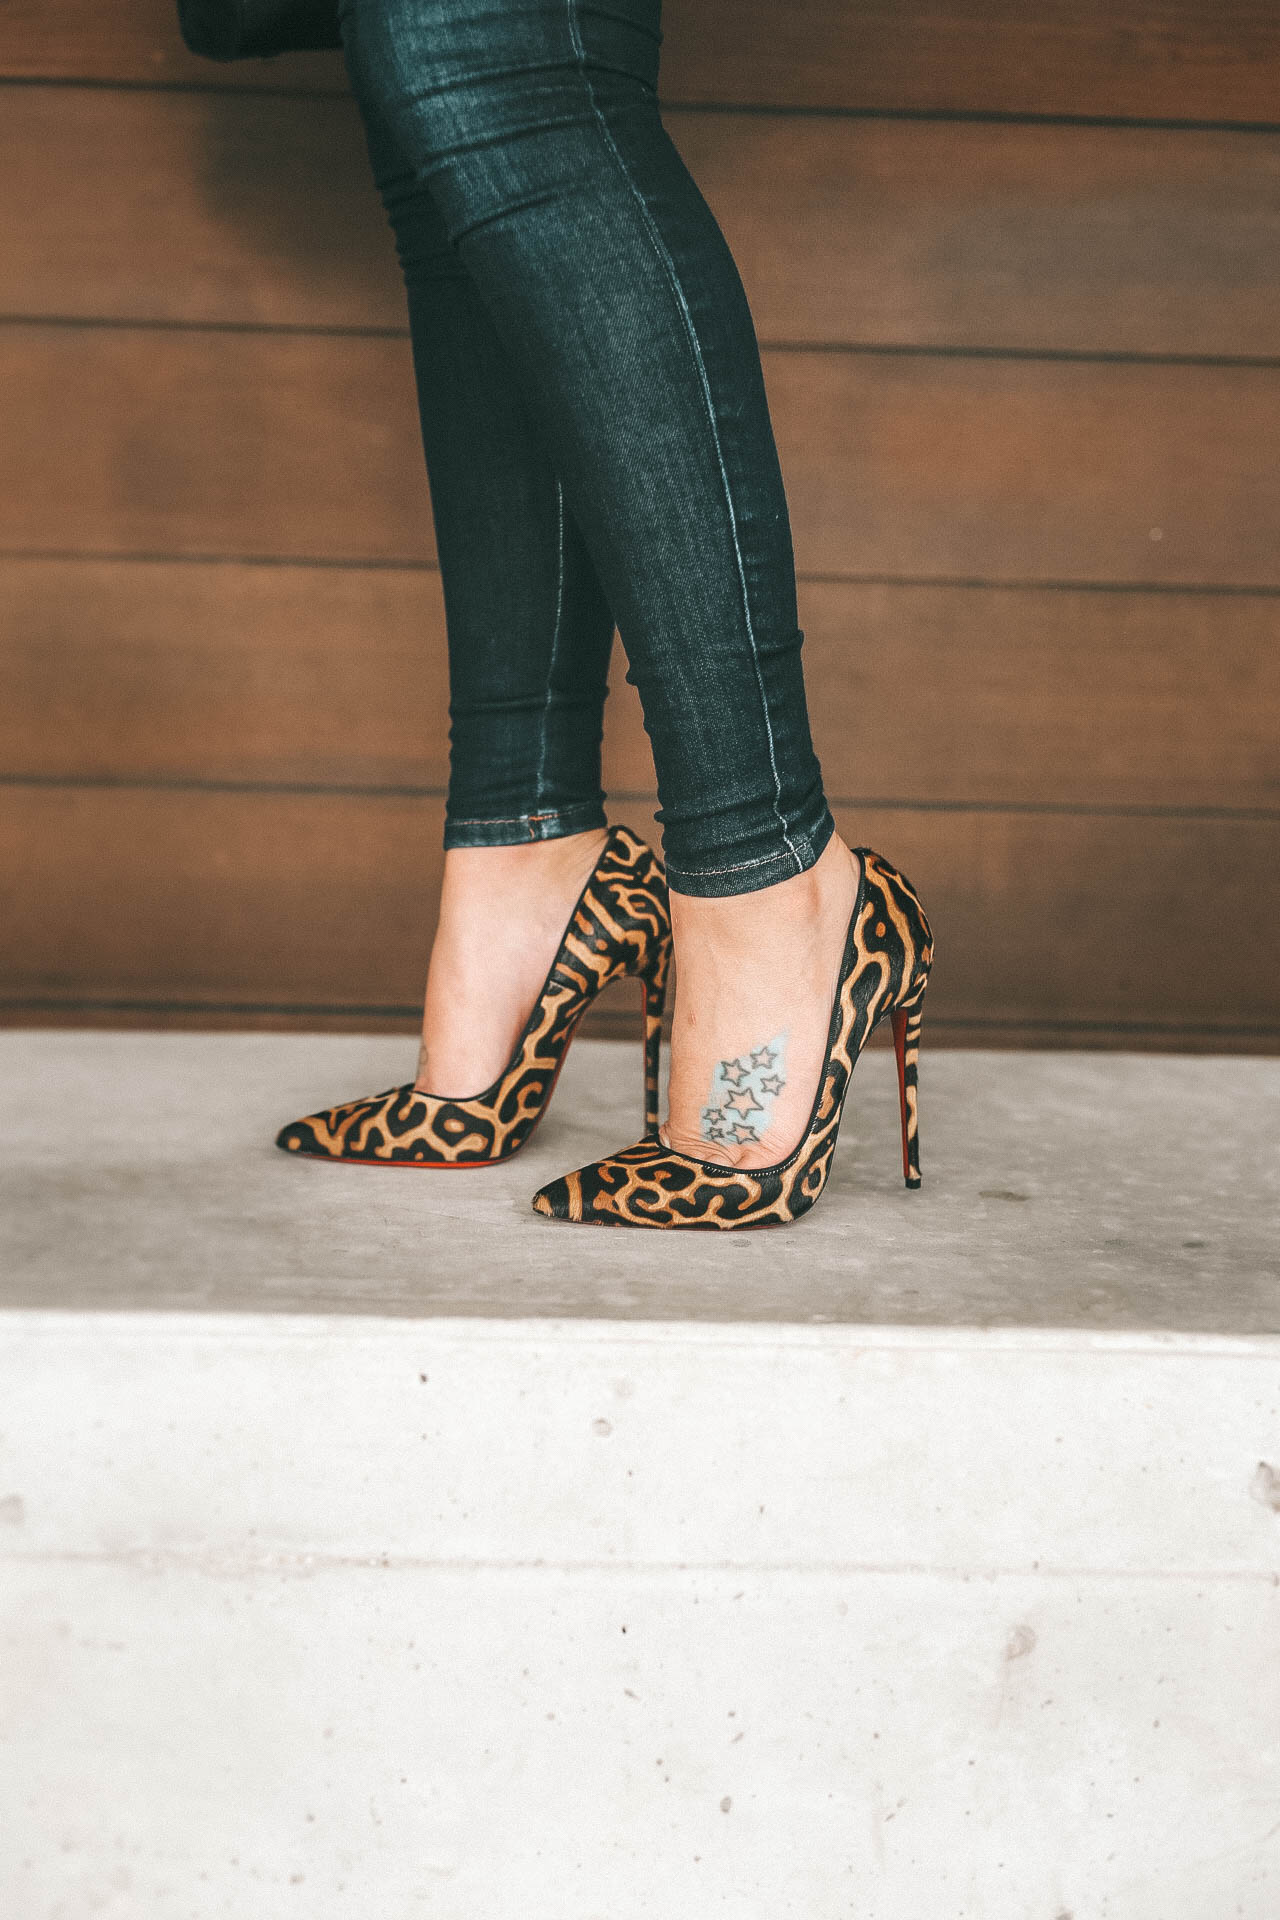 DTKAustin is sharing her 17 Must Have Leopard Print Pieces and Accessories for Fall Winter. Leopard Christian Louboutin Pumps | BlankNYC Faux Leather Moto Jacket | CamiNYC Channing Top|| Dressed to Kill #Leopardshoes #leopardprint #ChristianLouboutin #dtkaustin